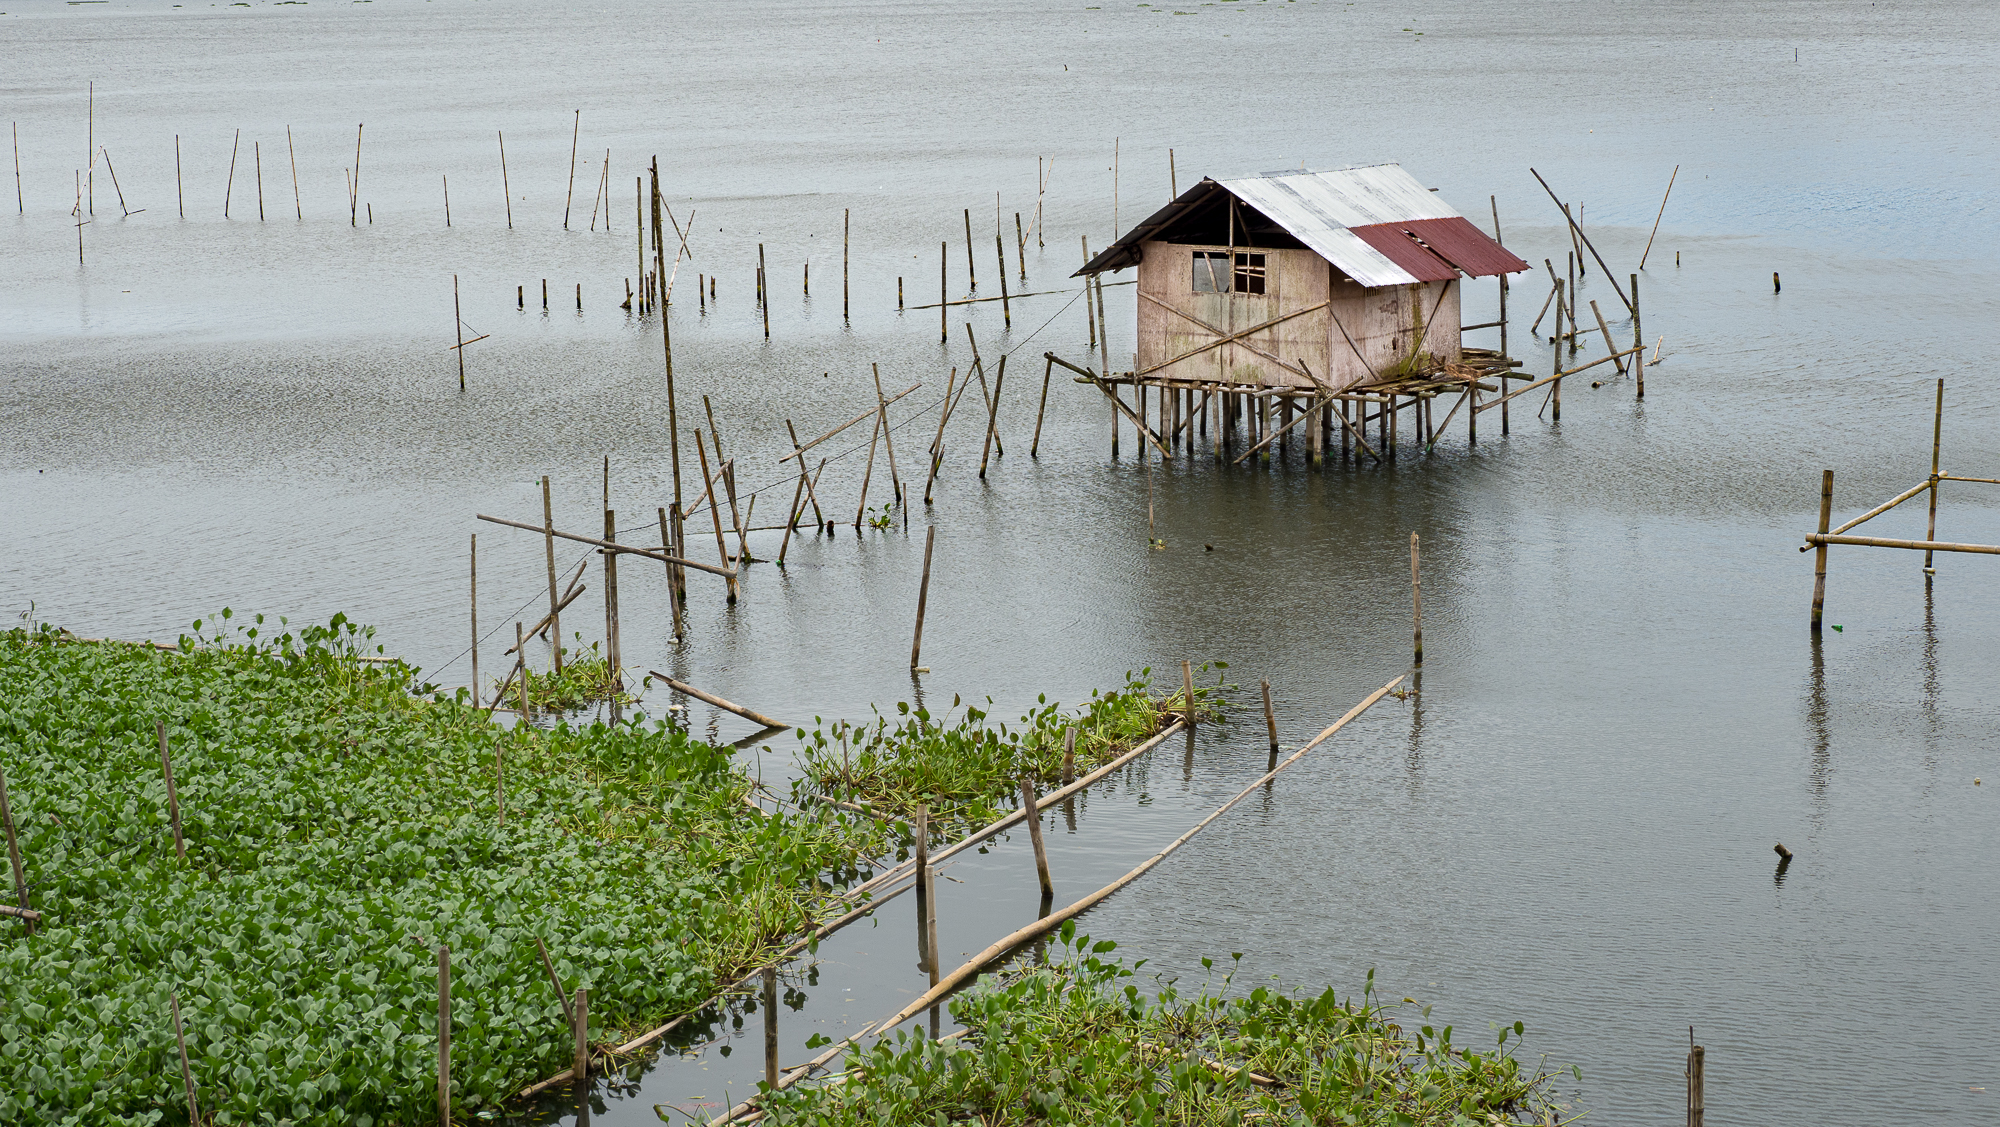 Floating houses in Poso lake, Indonesia